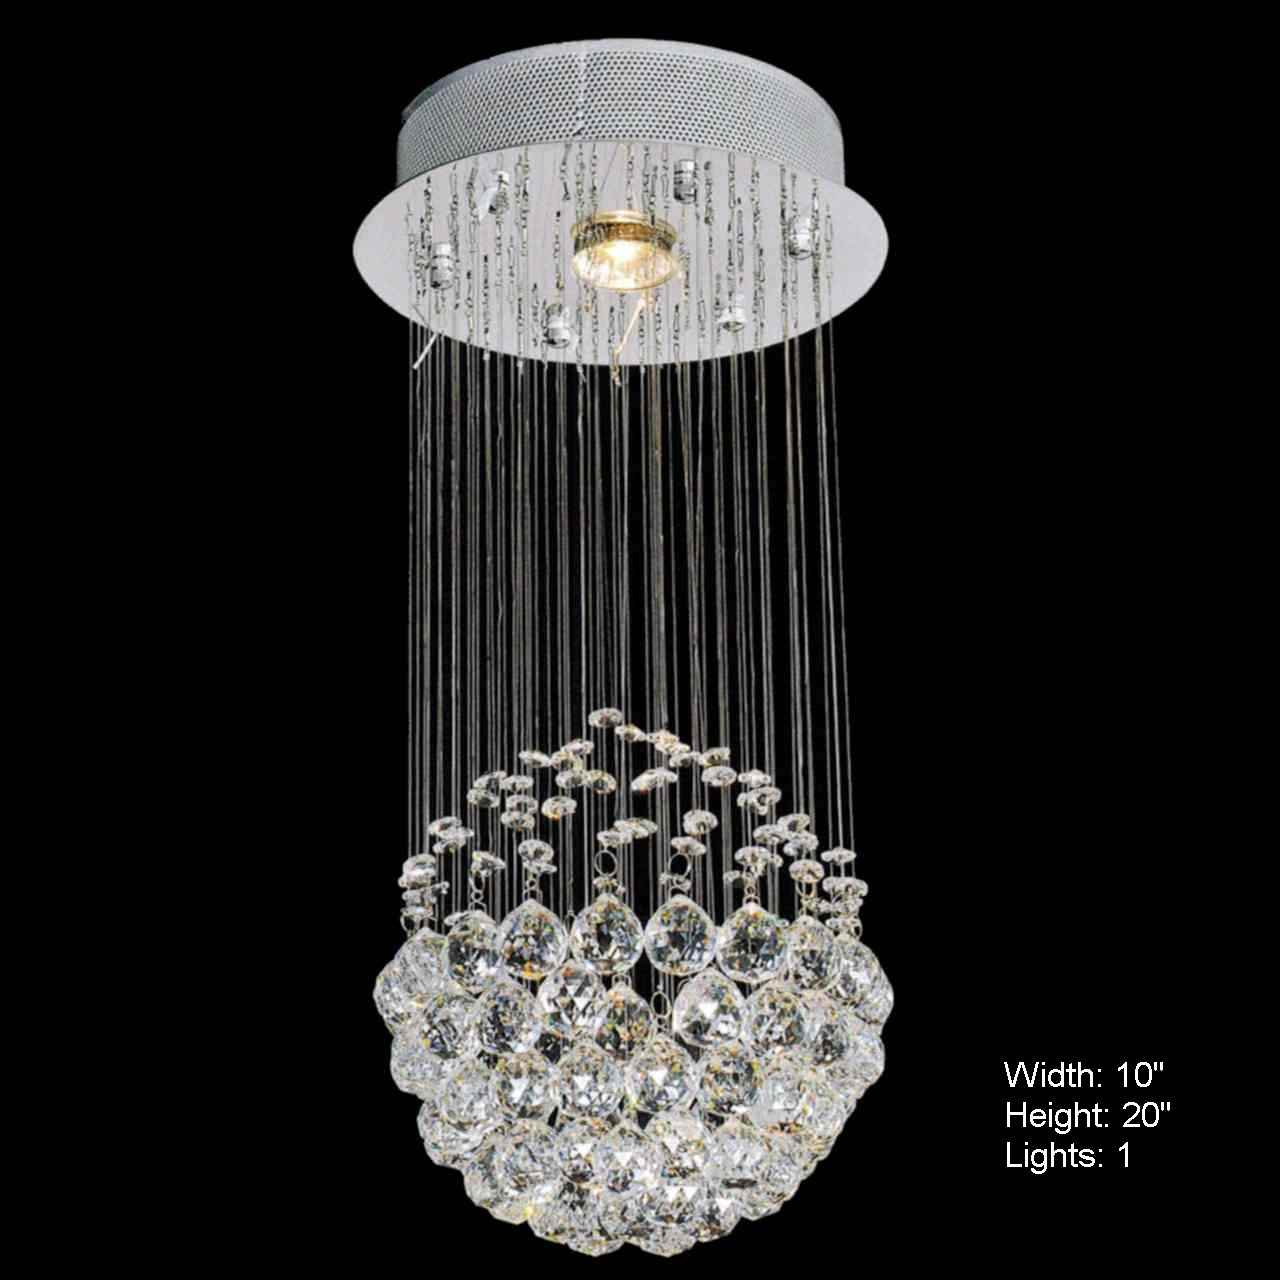 Brizzo lighting stores sphere modern crystal chandelier small picture of sphere modern crystal chandelier small mirror stainless steel base 1 light aloadofball Choice Image